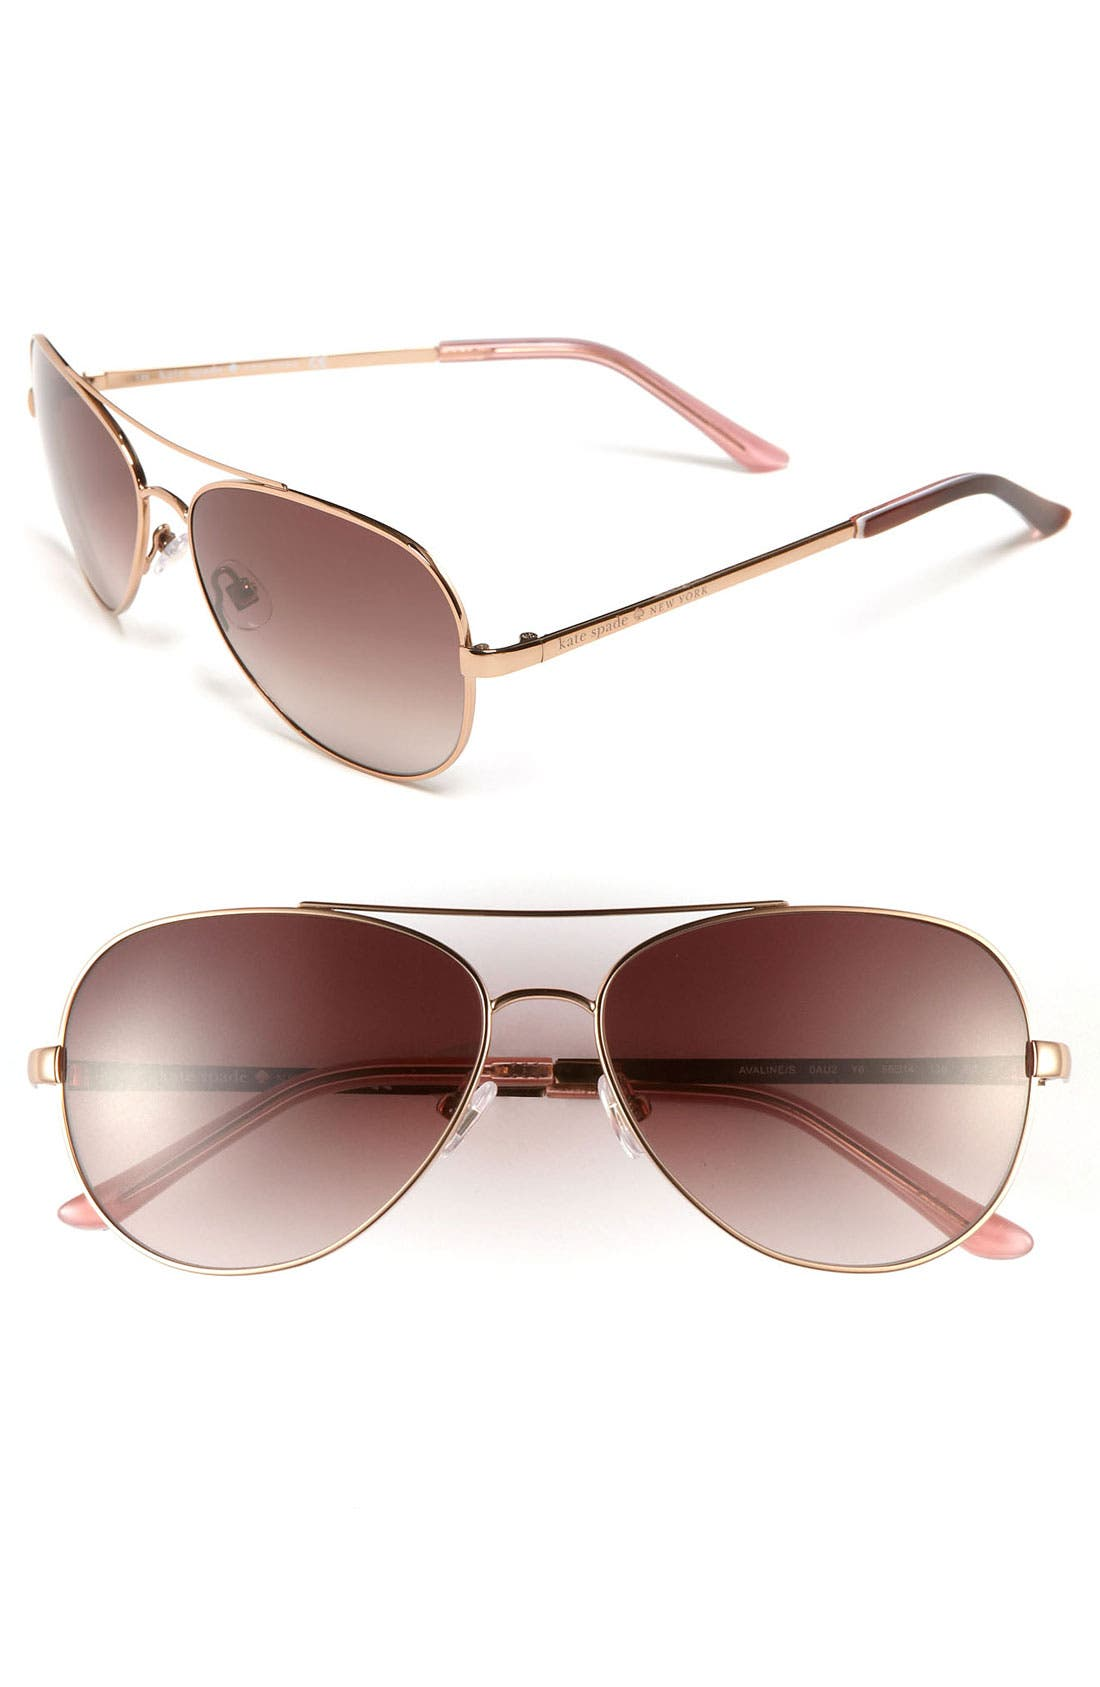 Alternate Image 1 Selected - kate spade new york 'avaline' 58mm aviator sunglasses